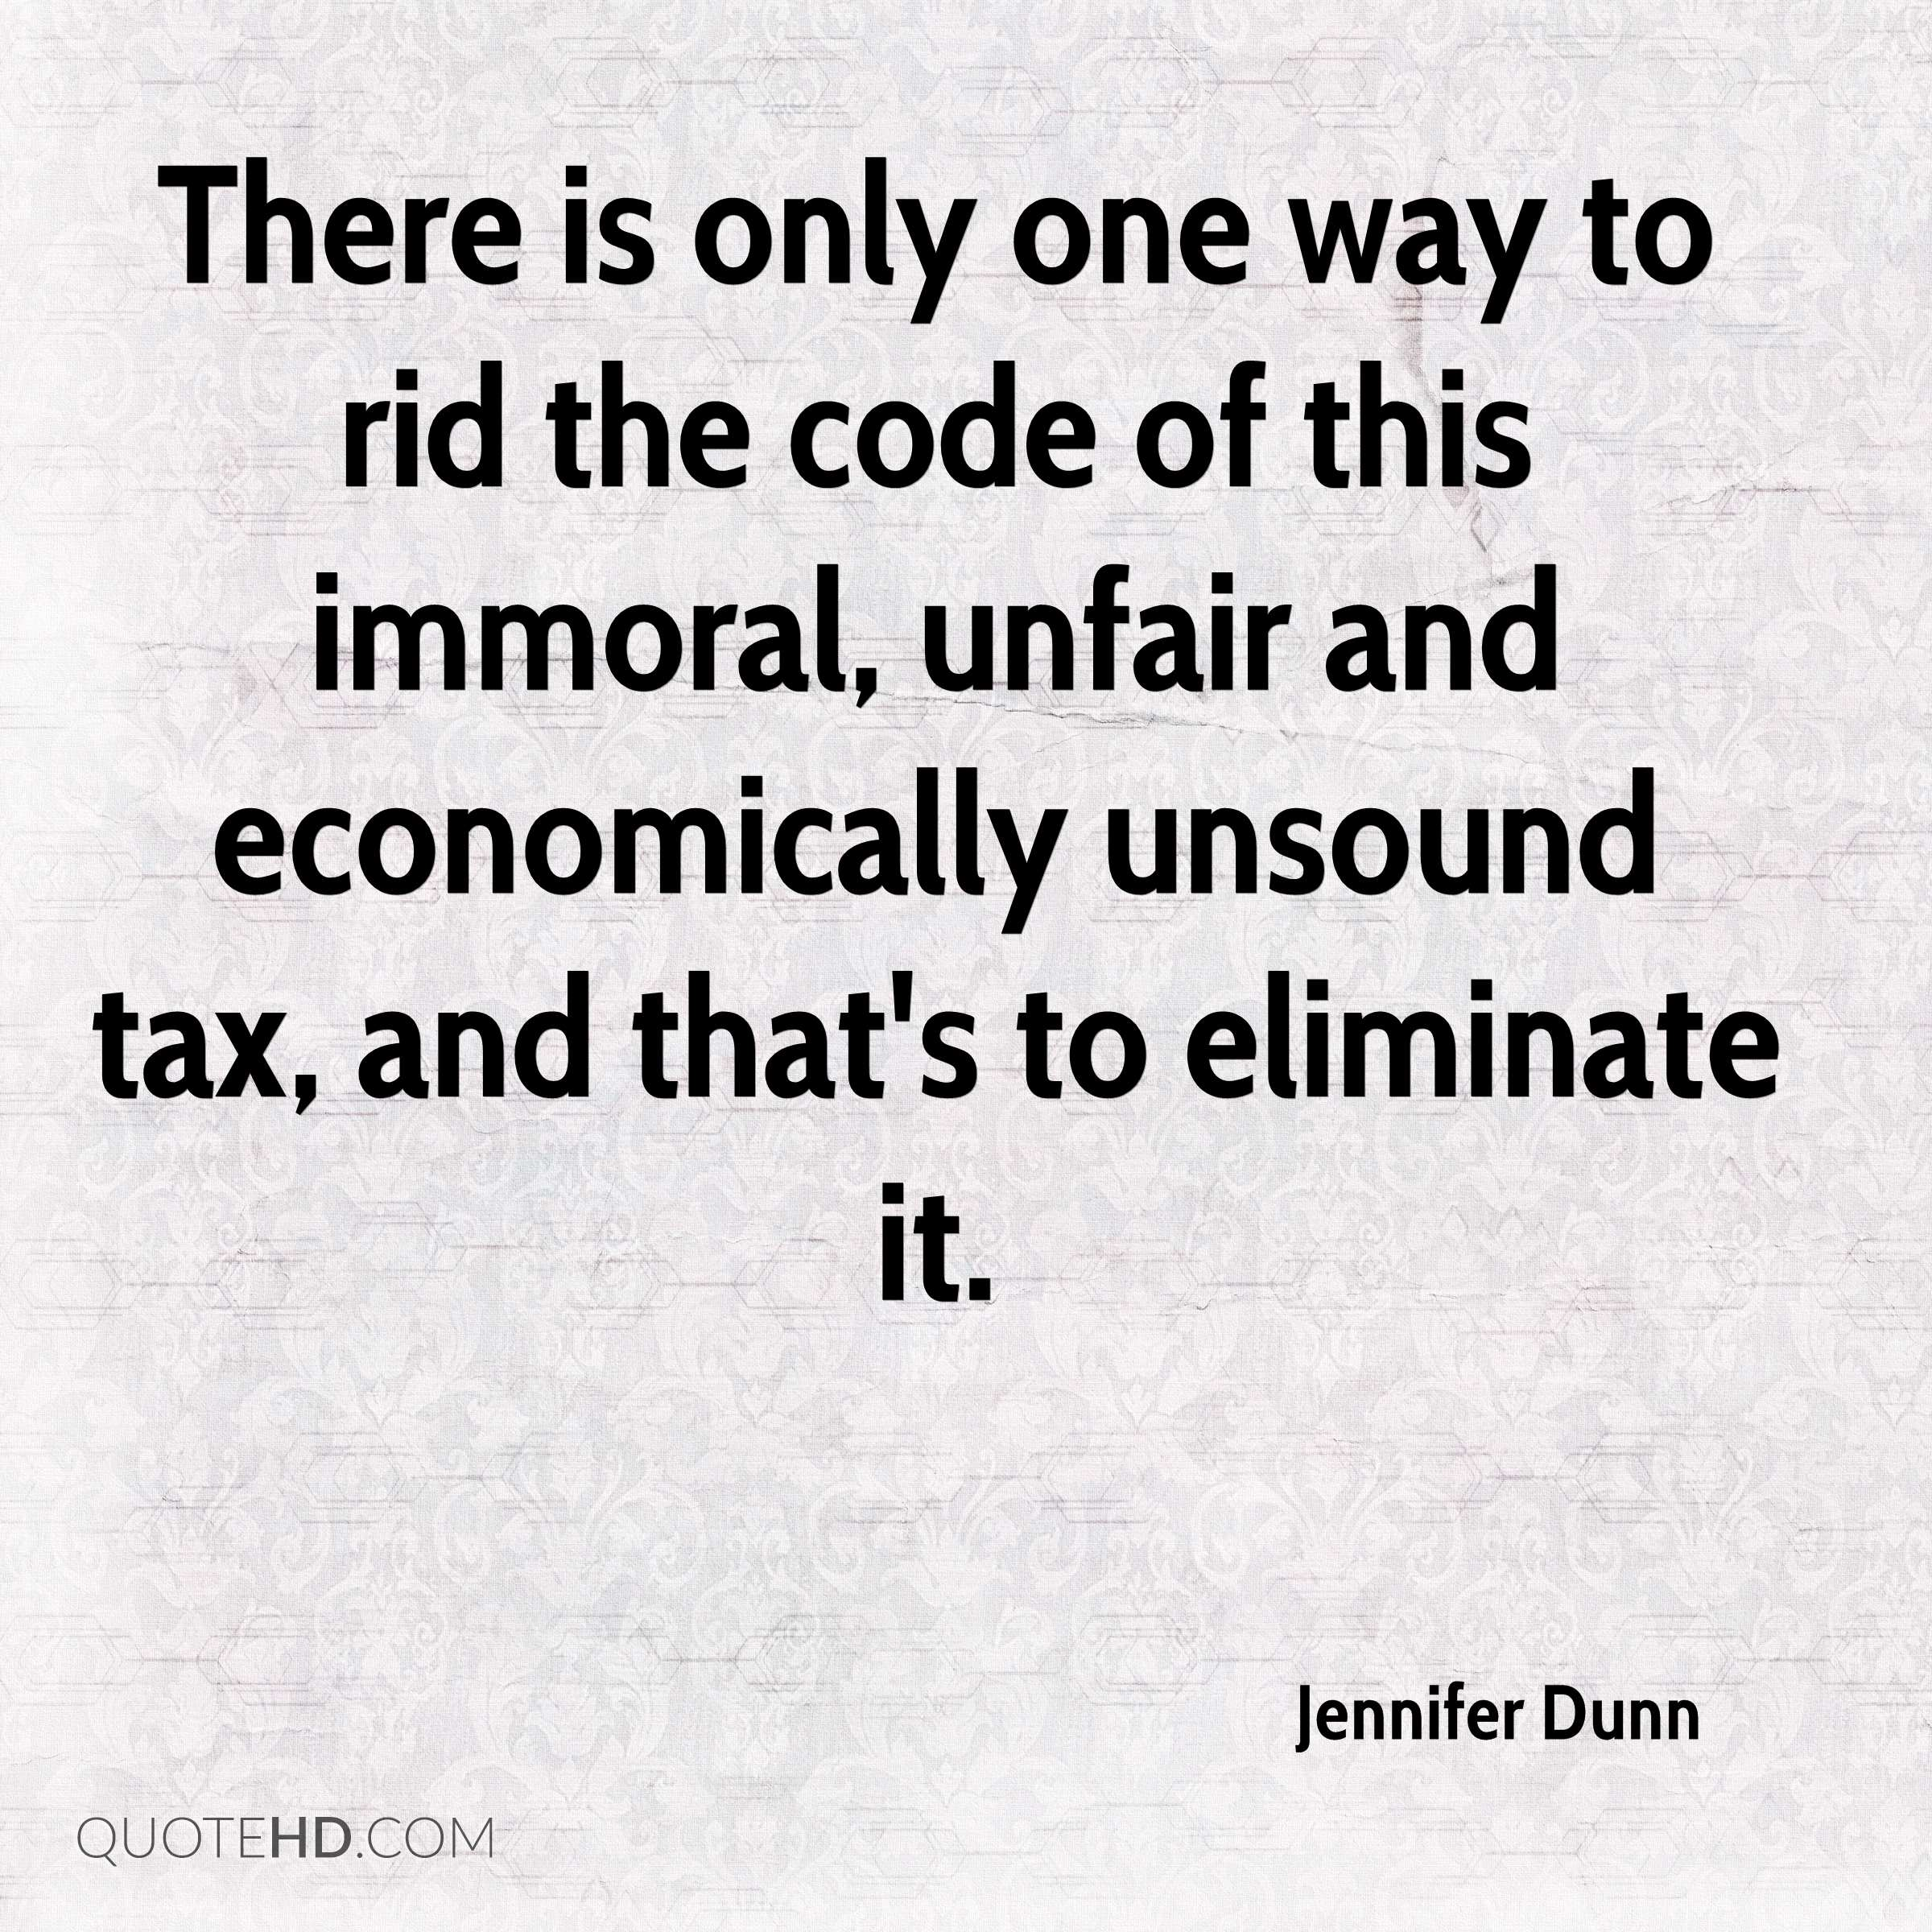 There is only one way to rid the code of this immoral, unfair and economically unsound tax, and that's to eliminate it.